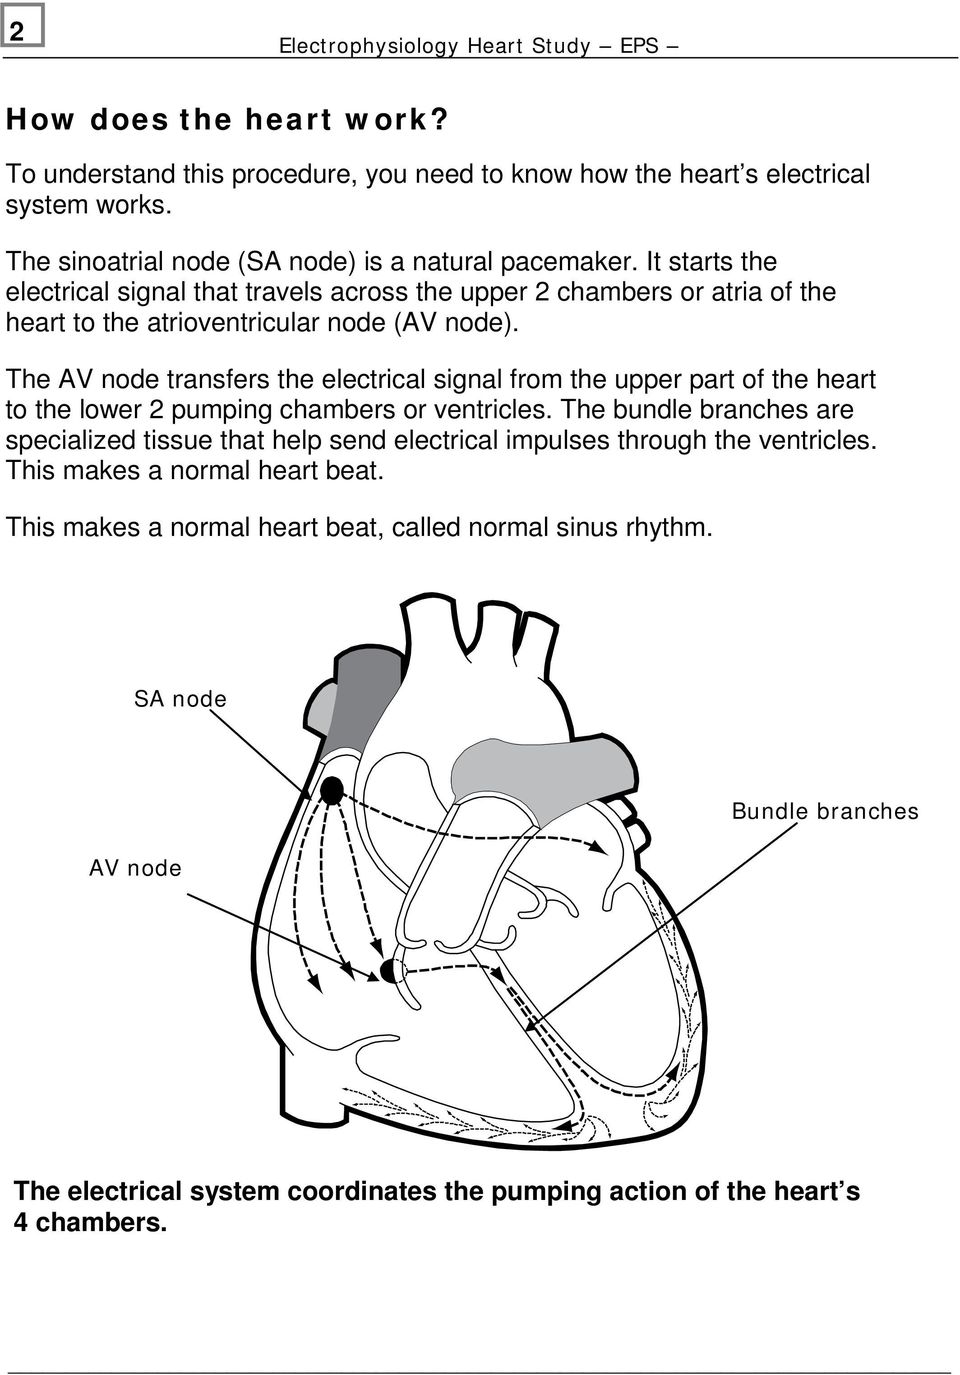 The AV node transfers the electrical signal from the upper part of the heart to the lower 2 pumping chambers or ventricles.